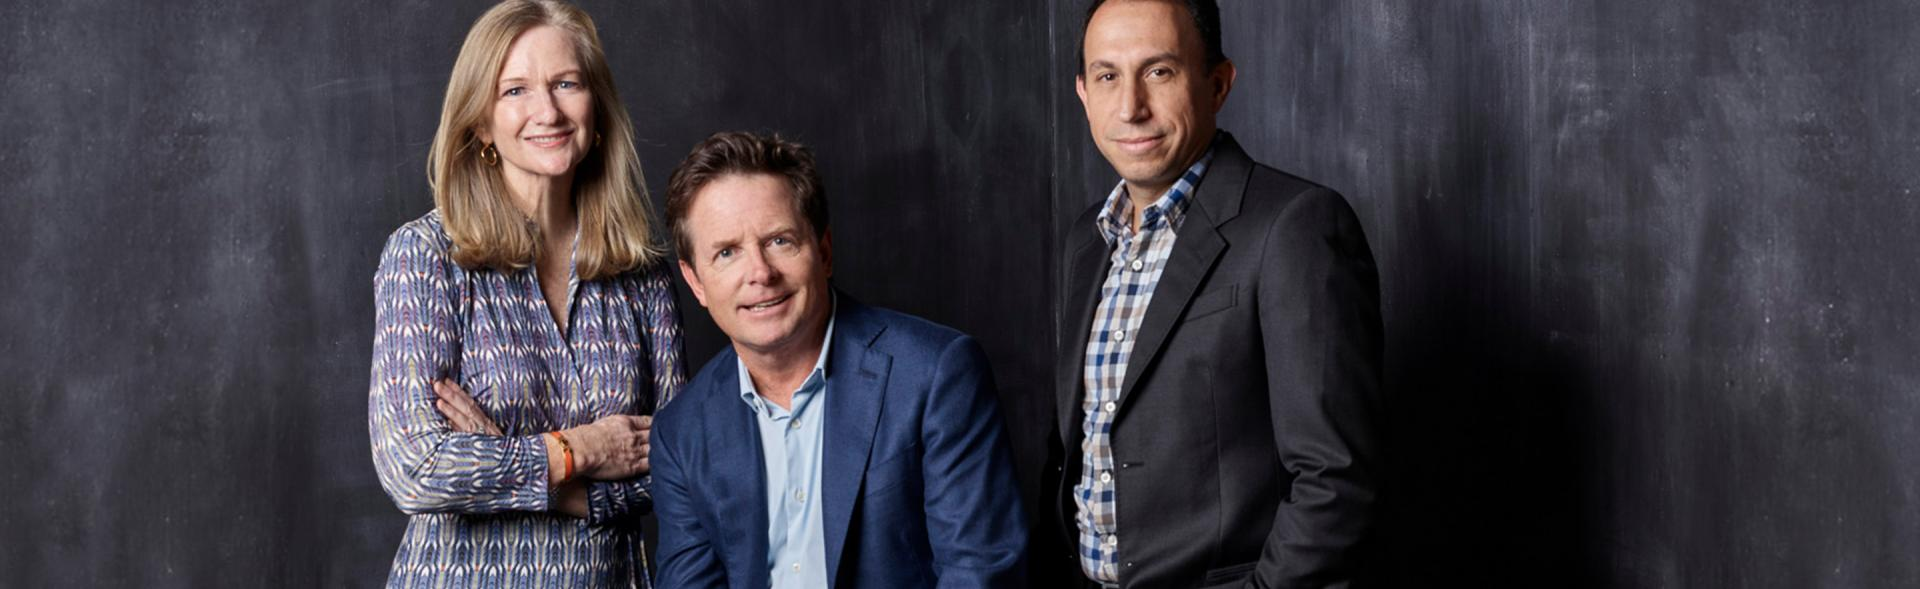 Co-Founder Deborah W. Brooks, Founder Michael J. Fox and CEO Todd Sherer